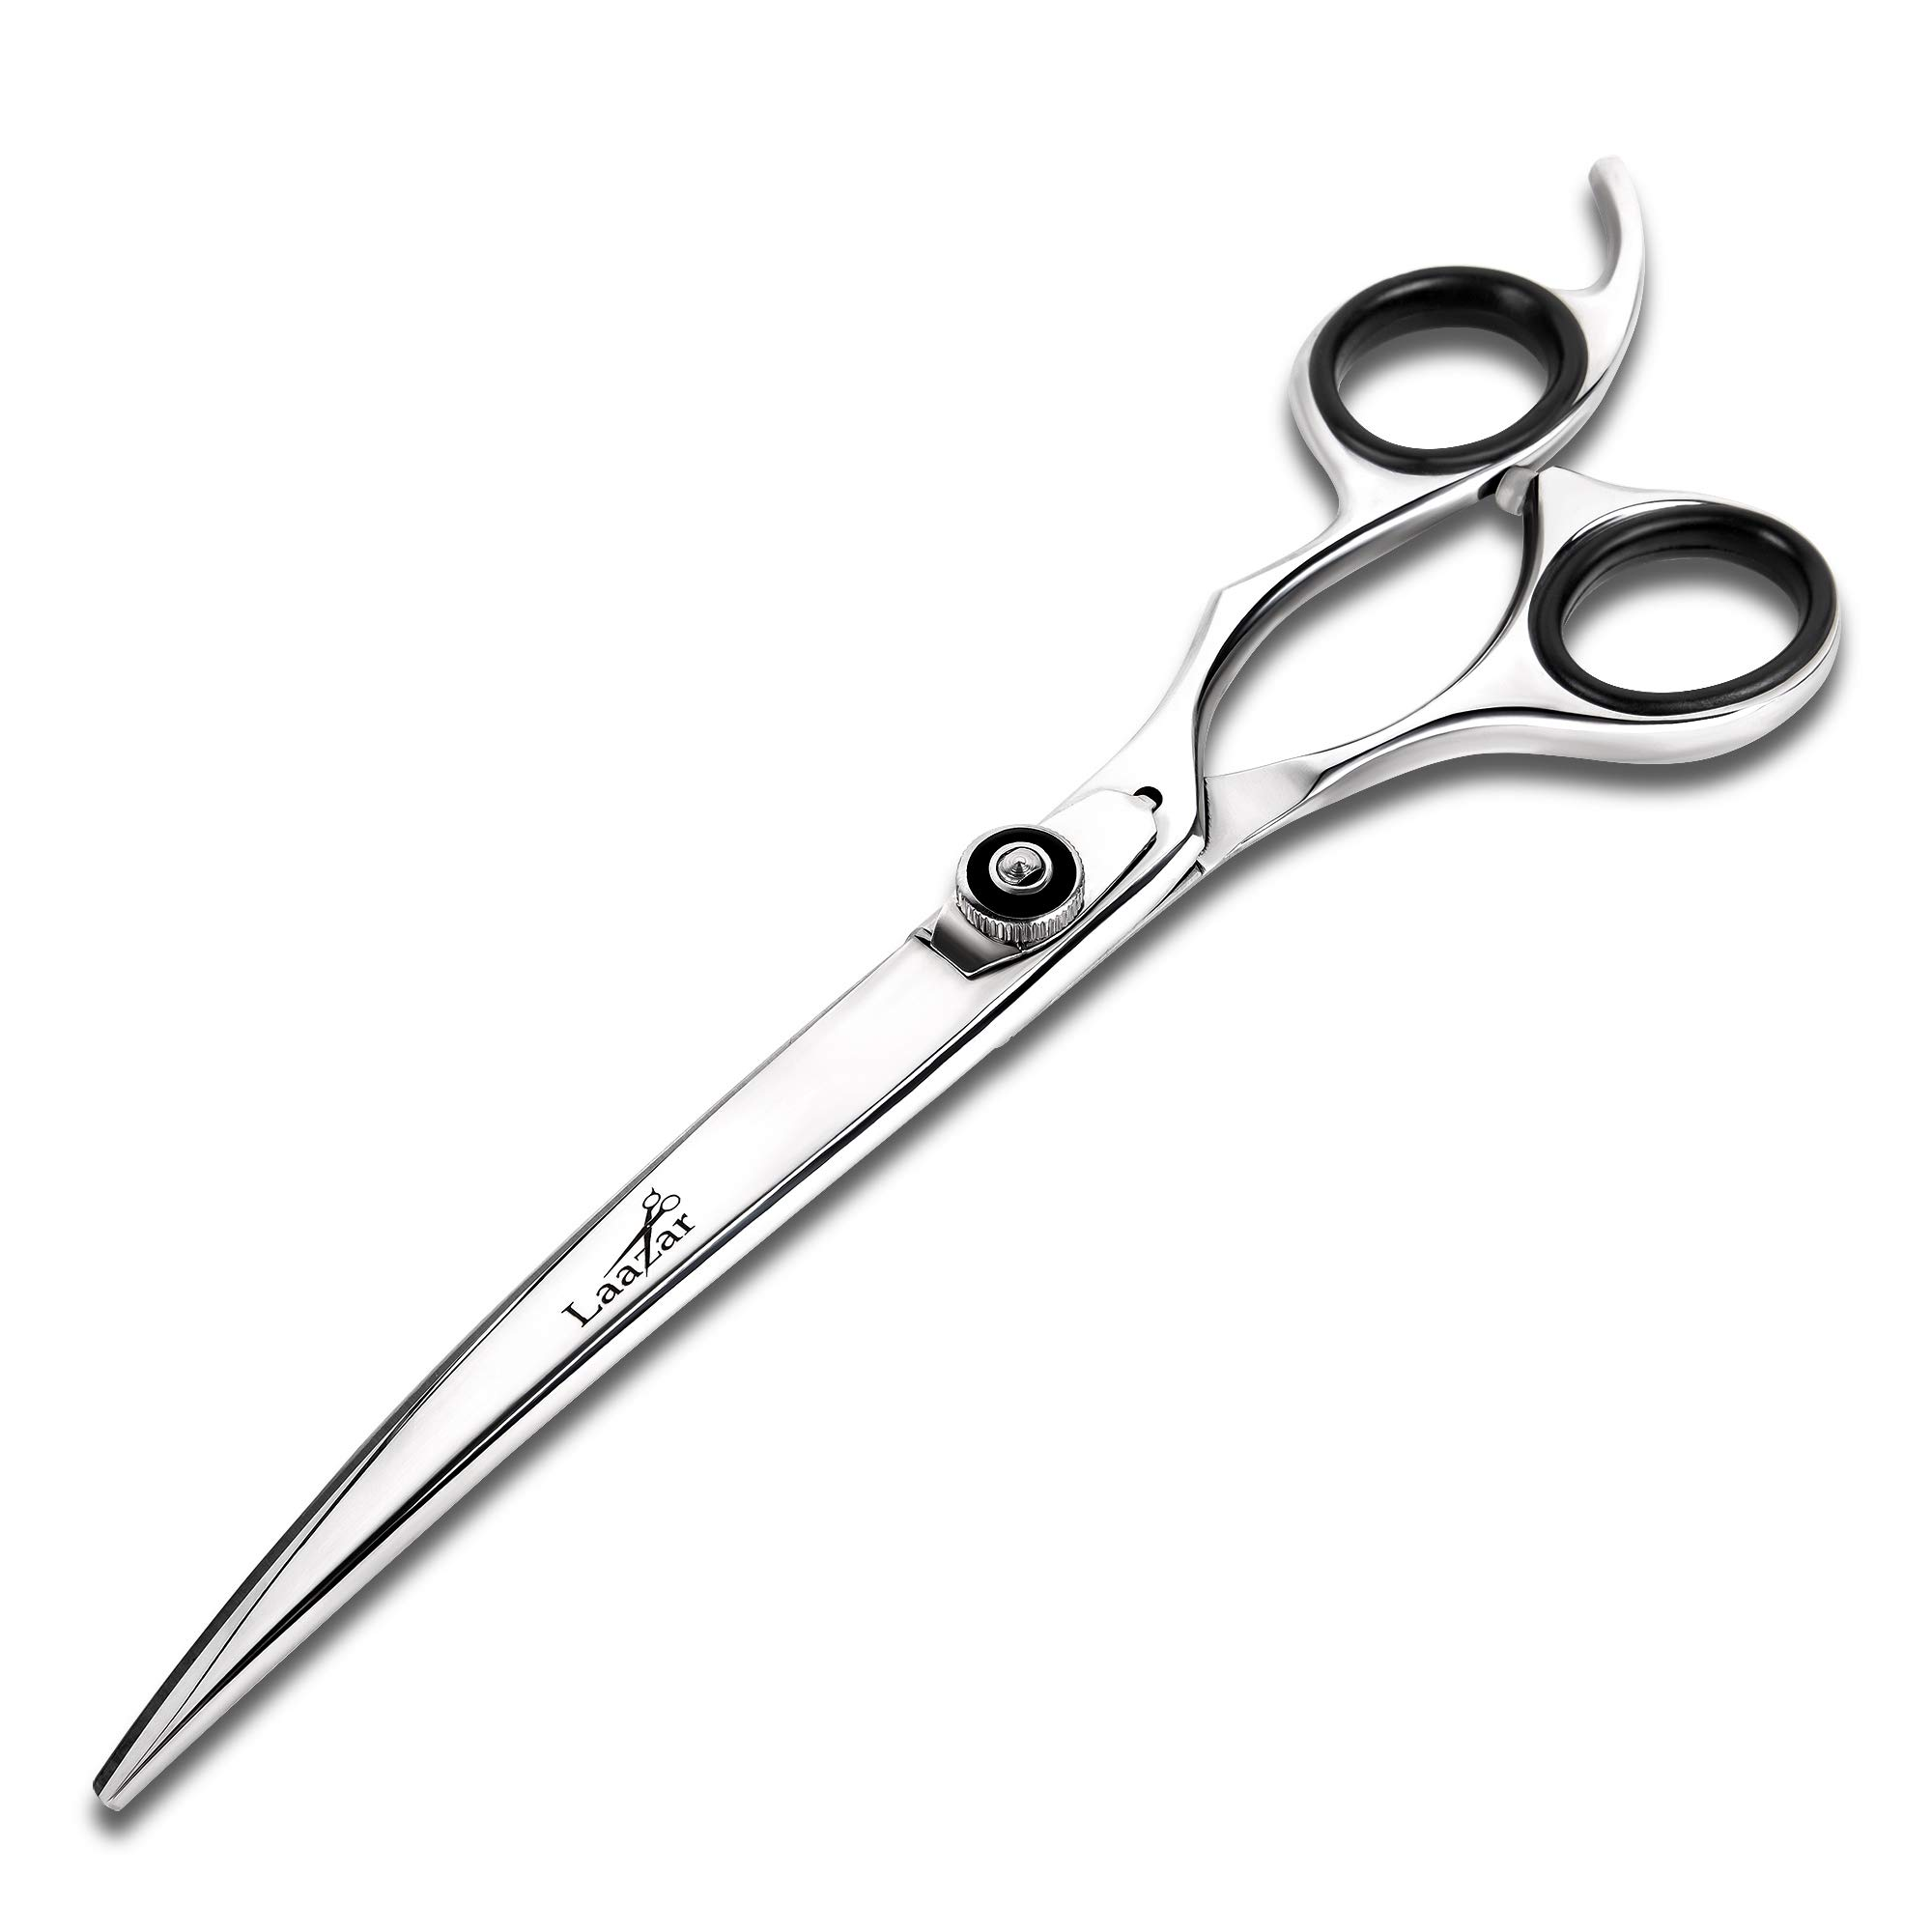 Laazar Professional 7.5 inch Curved Shears for Dogs and Cats | Tension Adjustable Pet Grooming Scissors | 440C Japanese Stainless Steel | Groomers Tool for Men and Woman Leather case Included